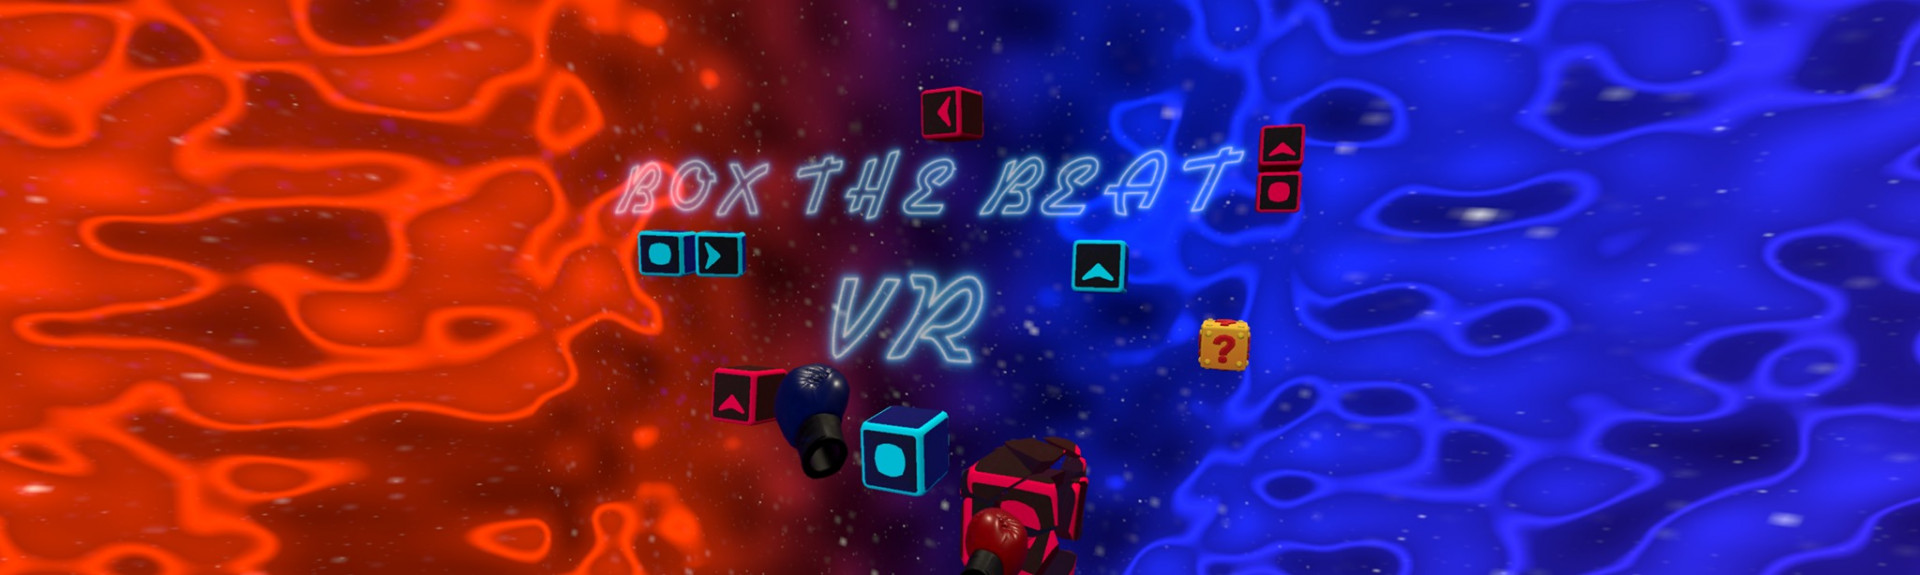 BOX THE BEAT VR